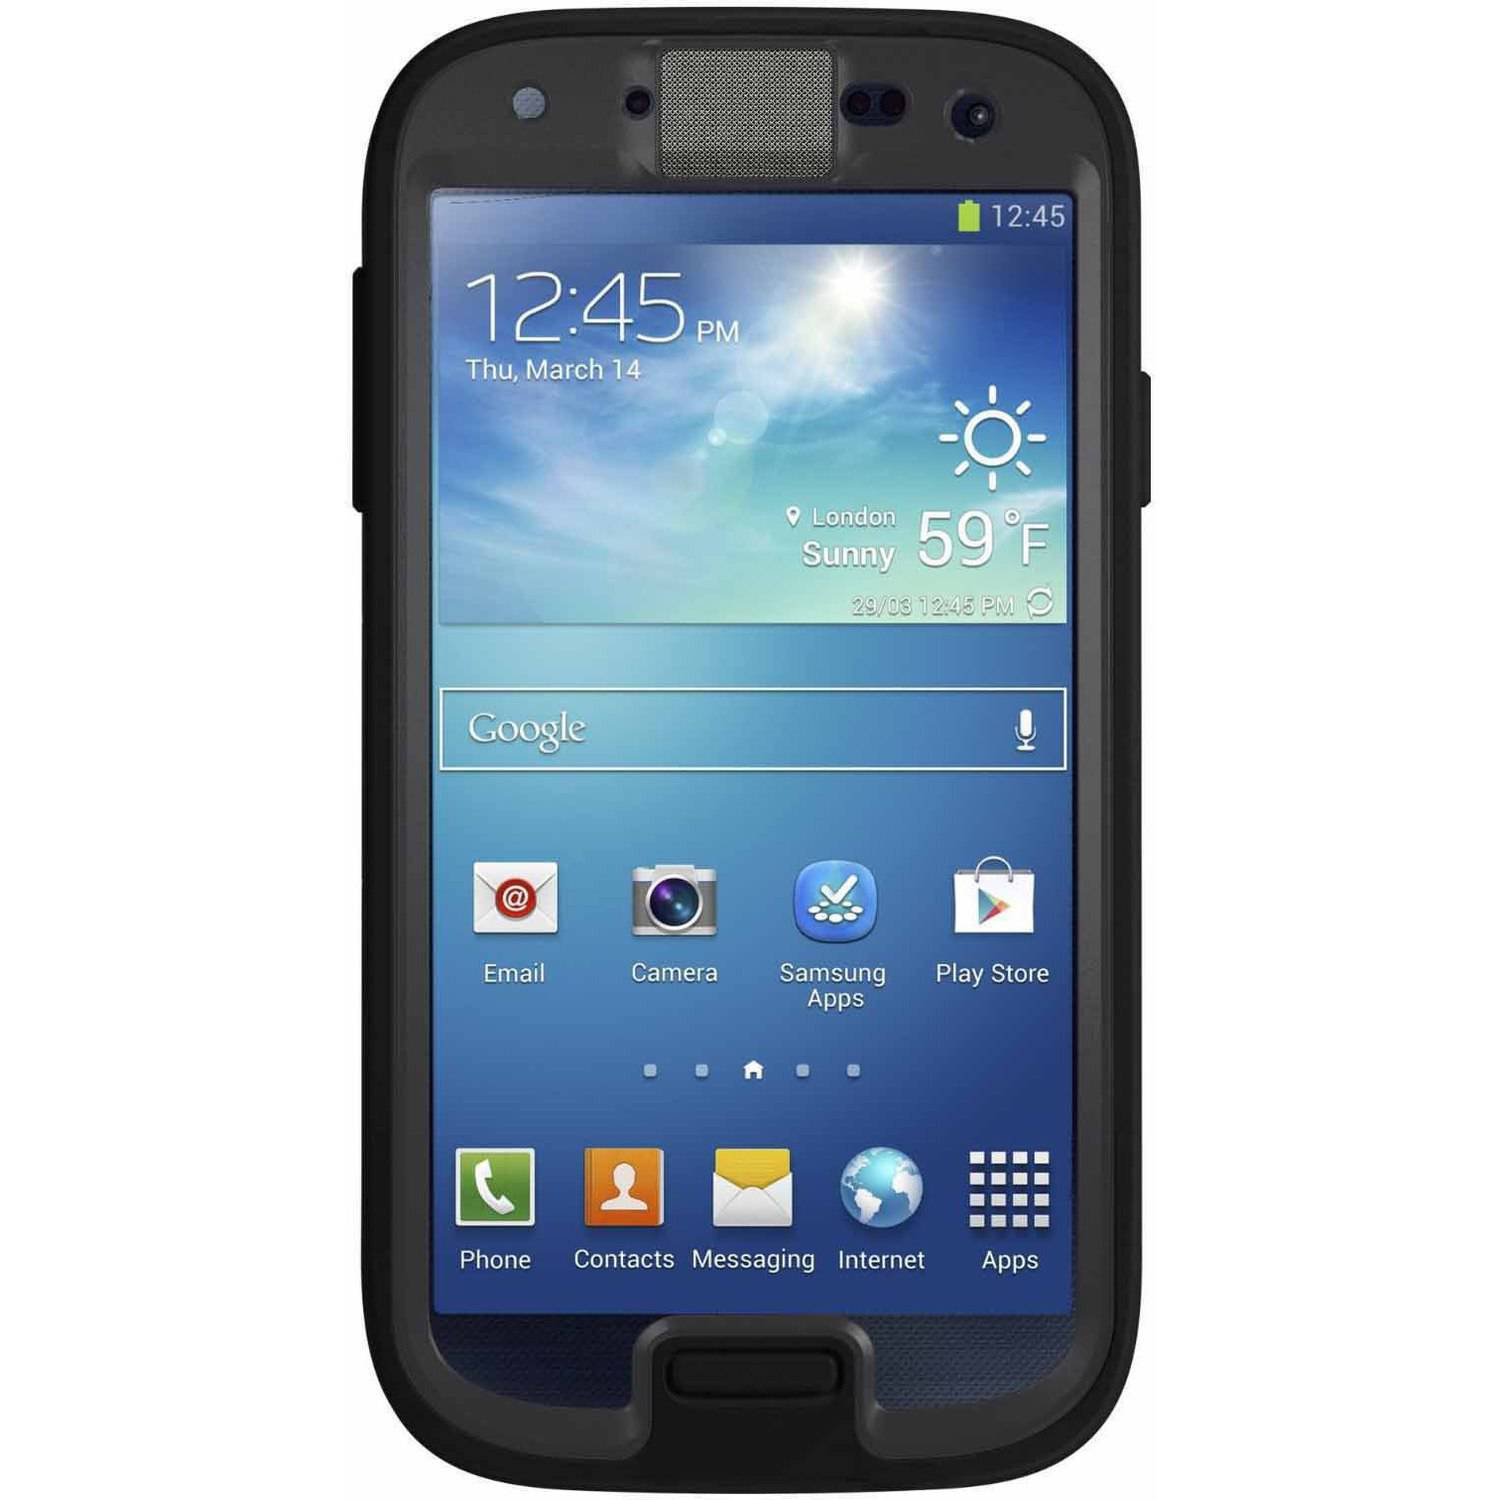 Samsung Galaxy S4 I9500 16GB GSM Smartphone and OtterBox Preserver Case (Unlocked)